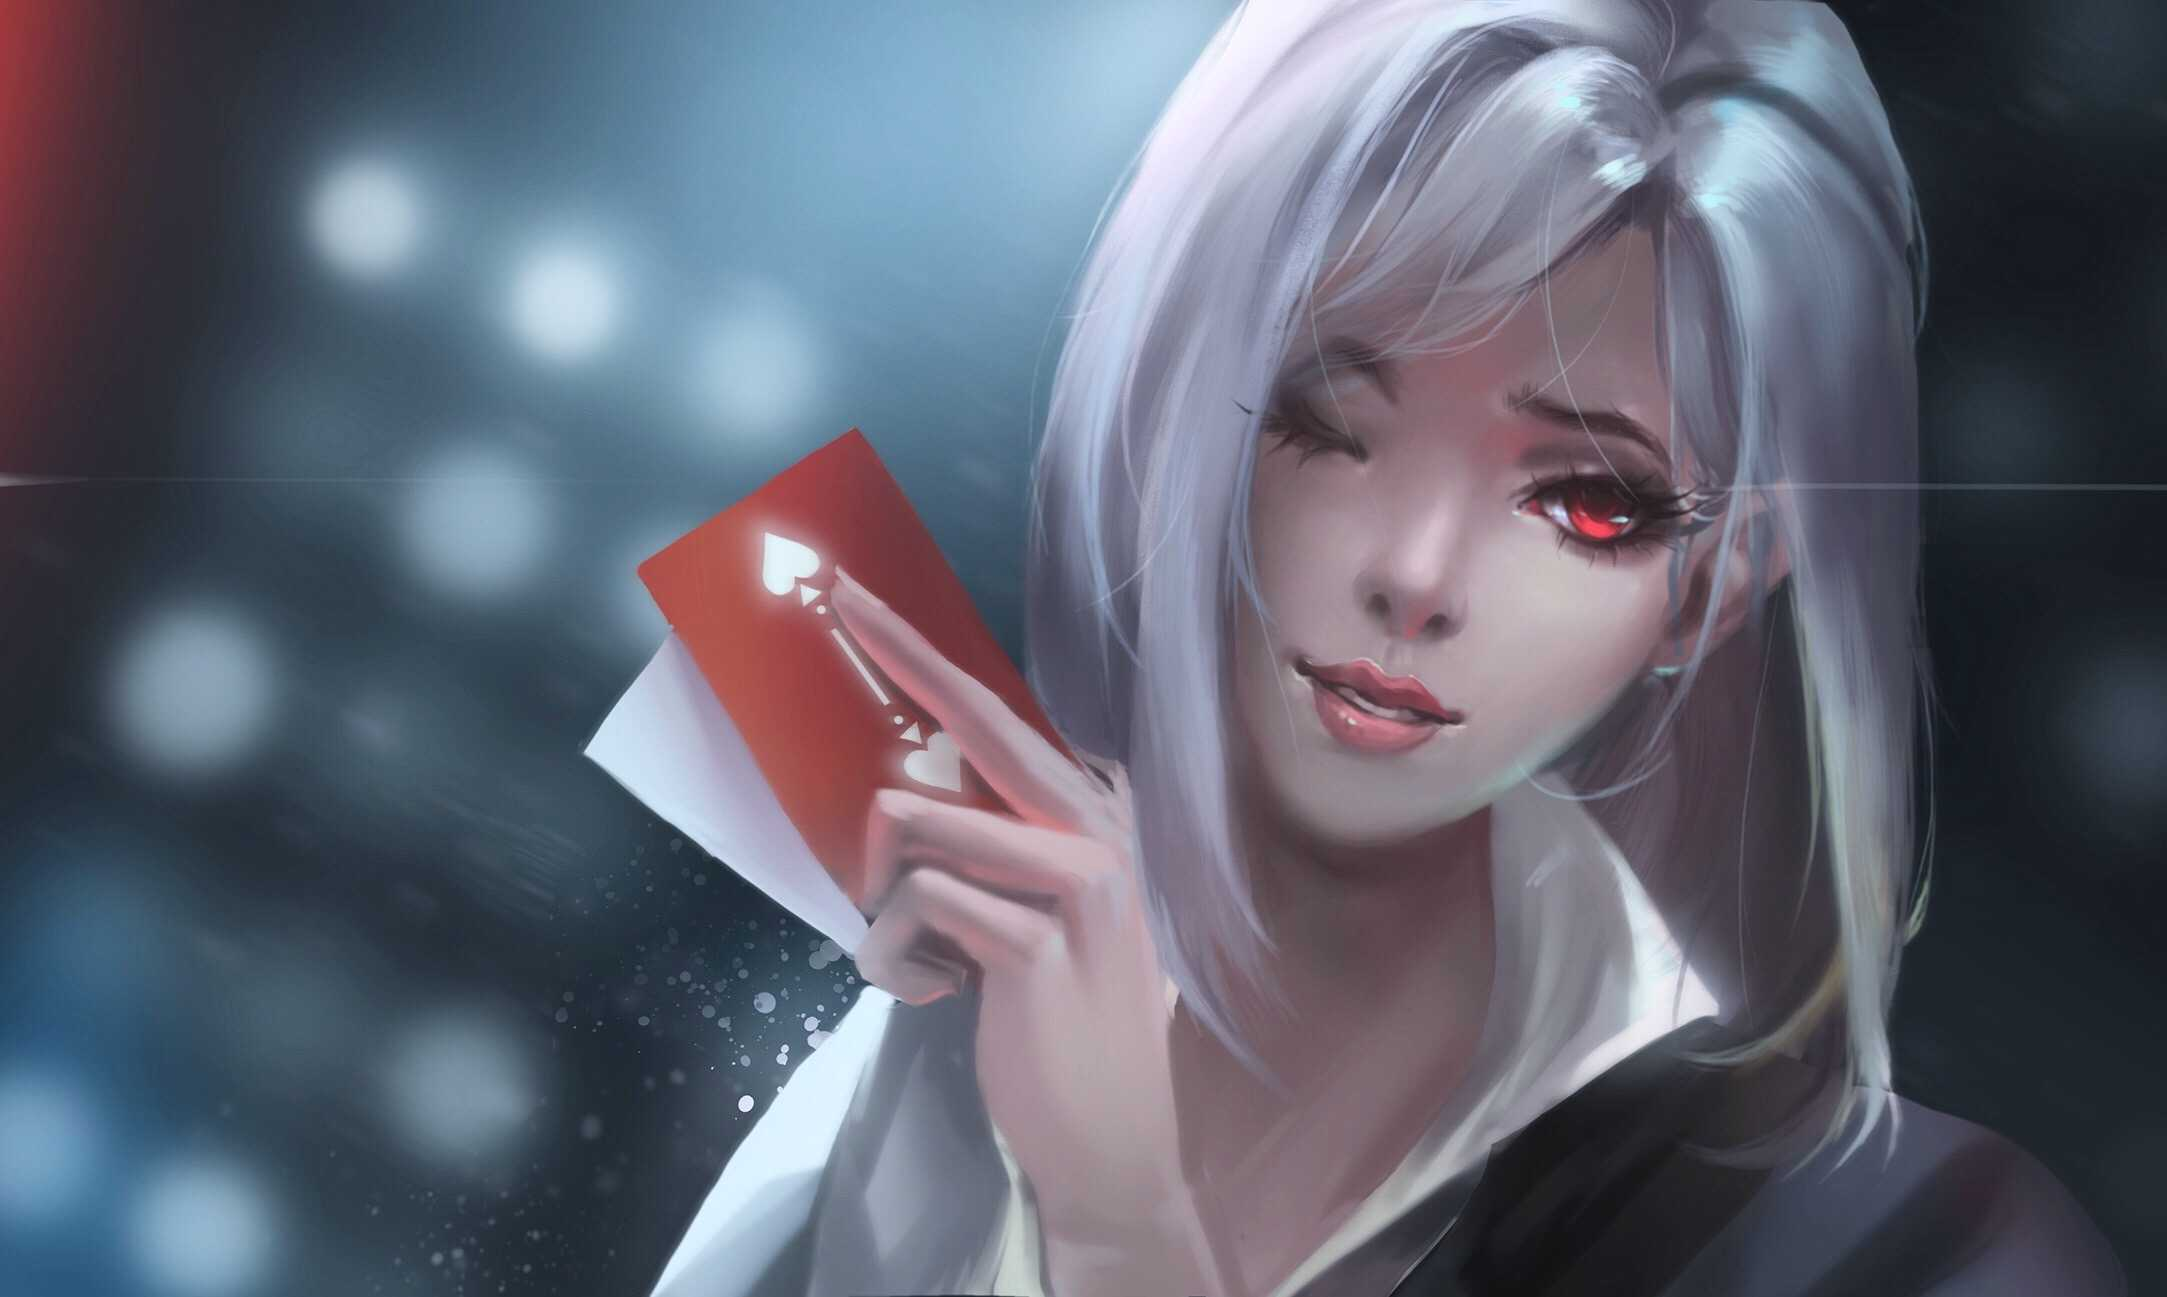 Girl Paly With Cards Wallpaper Overwatch